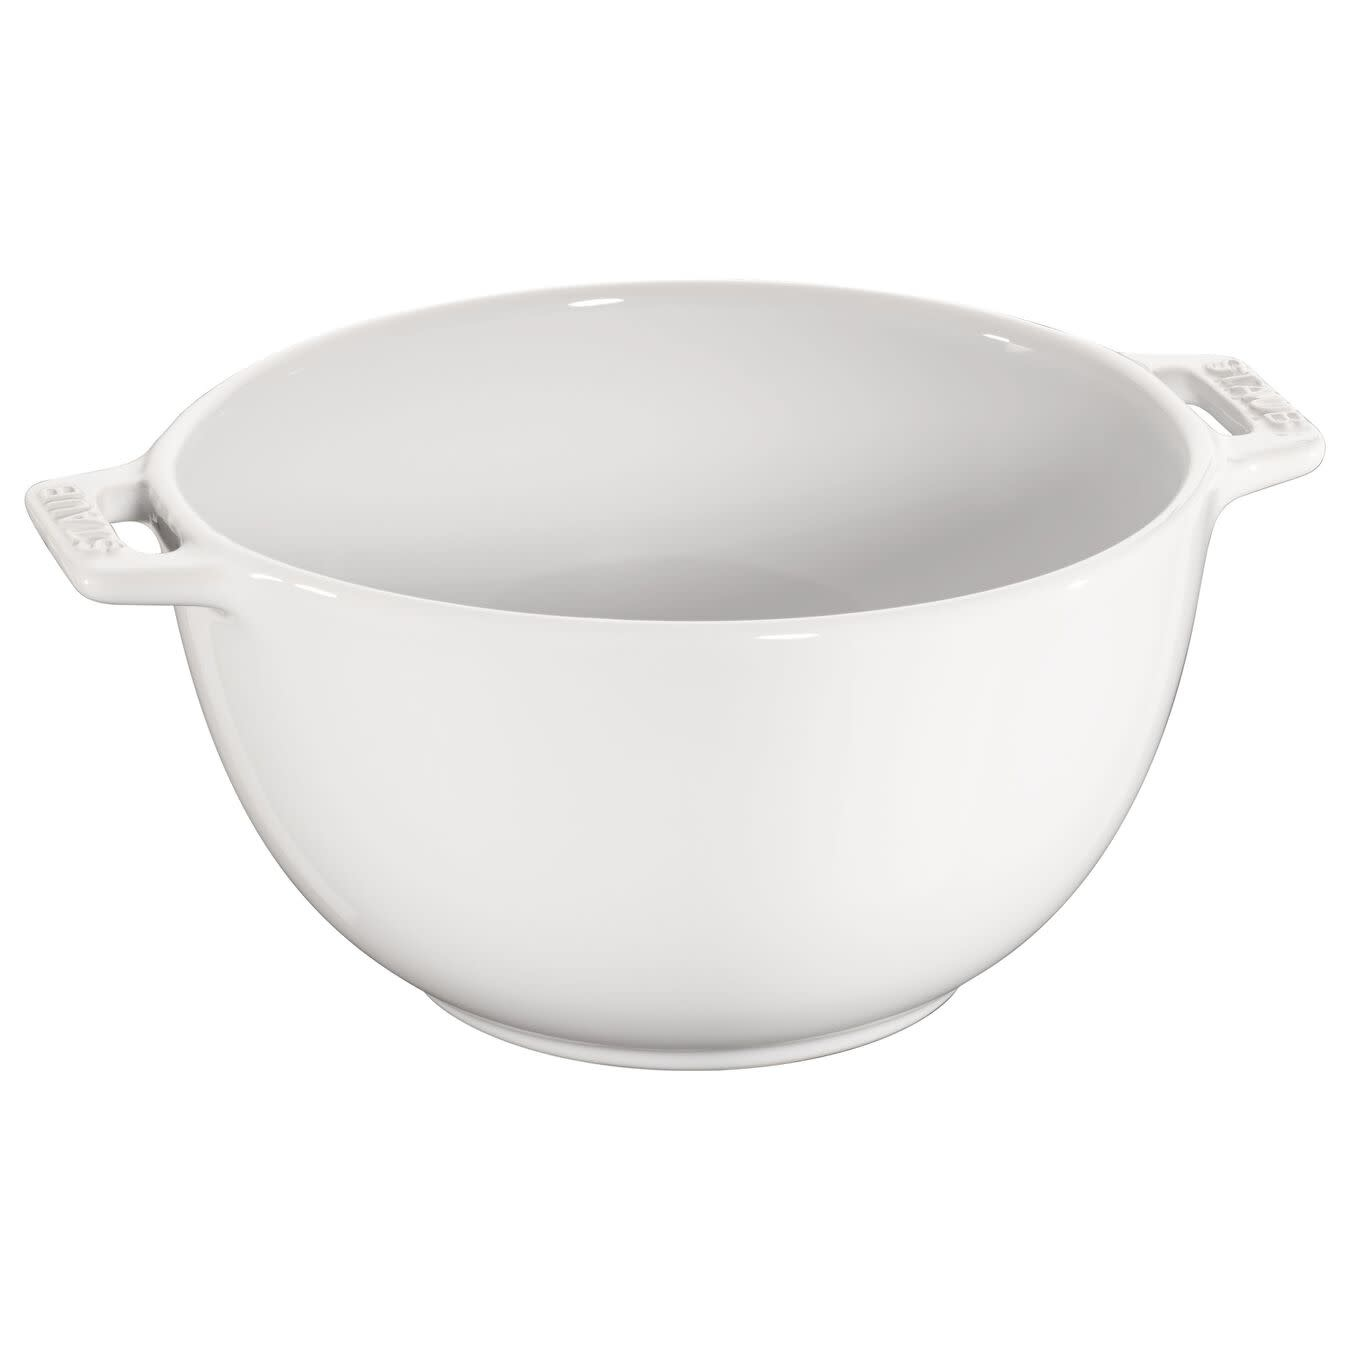 "Staub Serving Bowl Small 18cm/7"" - White"